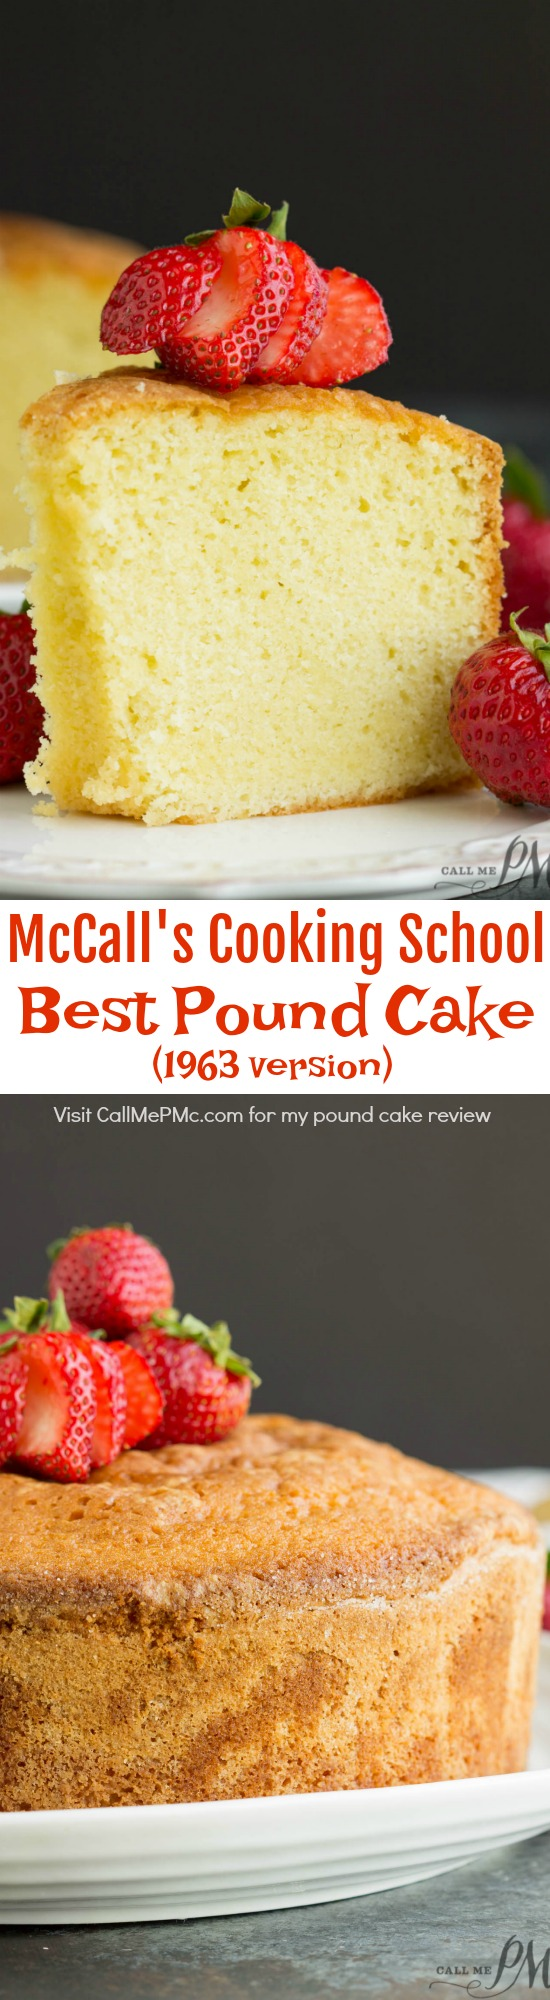 McCall's Best Pound Cake 1963 Version is tender and buttery with a classic vanilla flavor. Yes, there is a later version that I'll be making and sharing my thoughts on it at a later day.